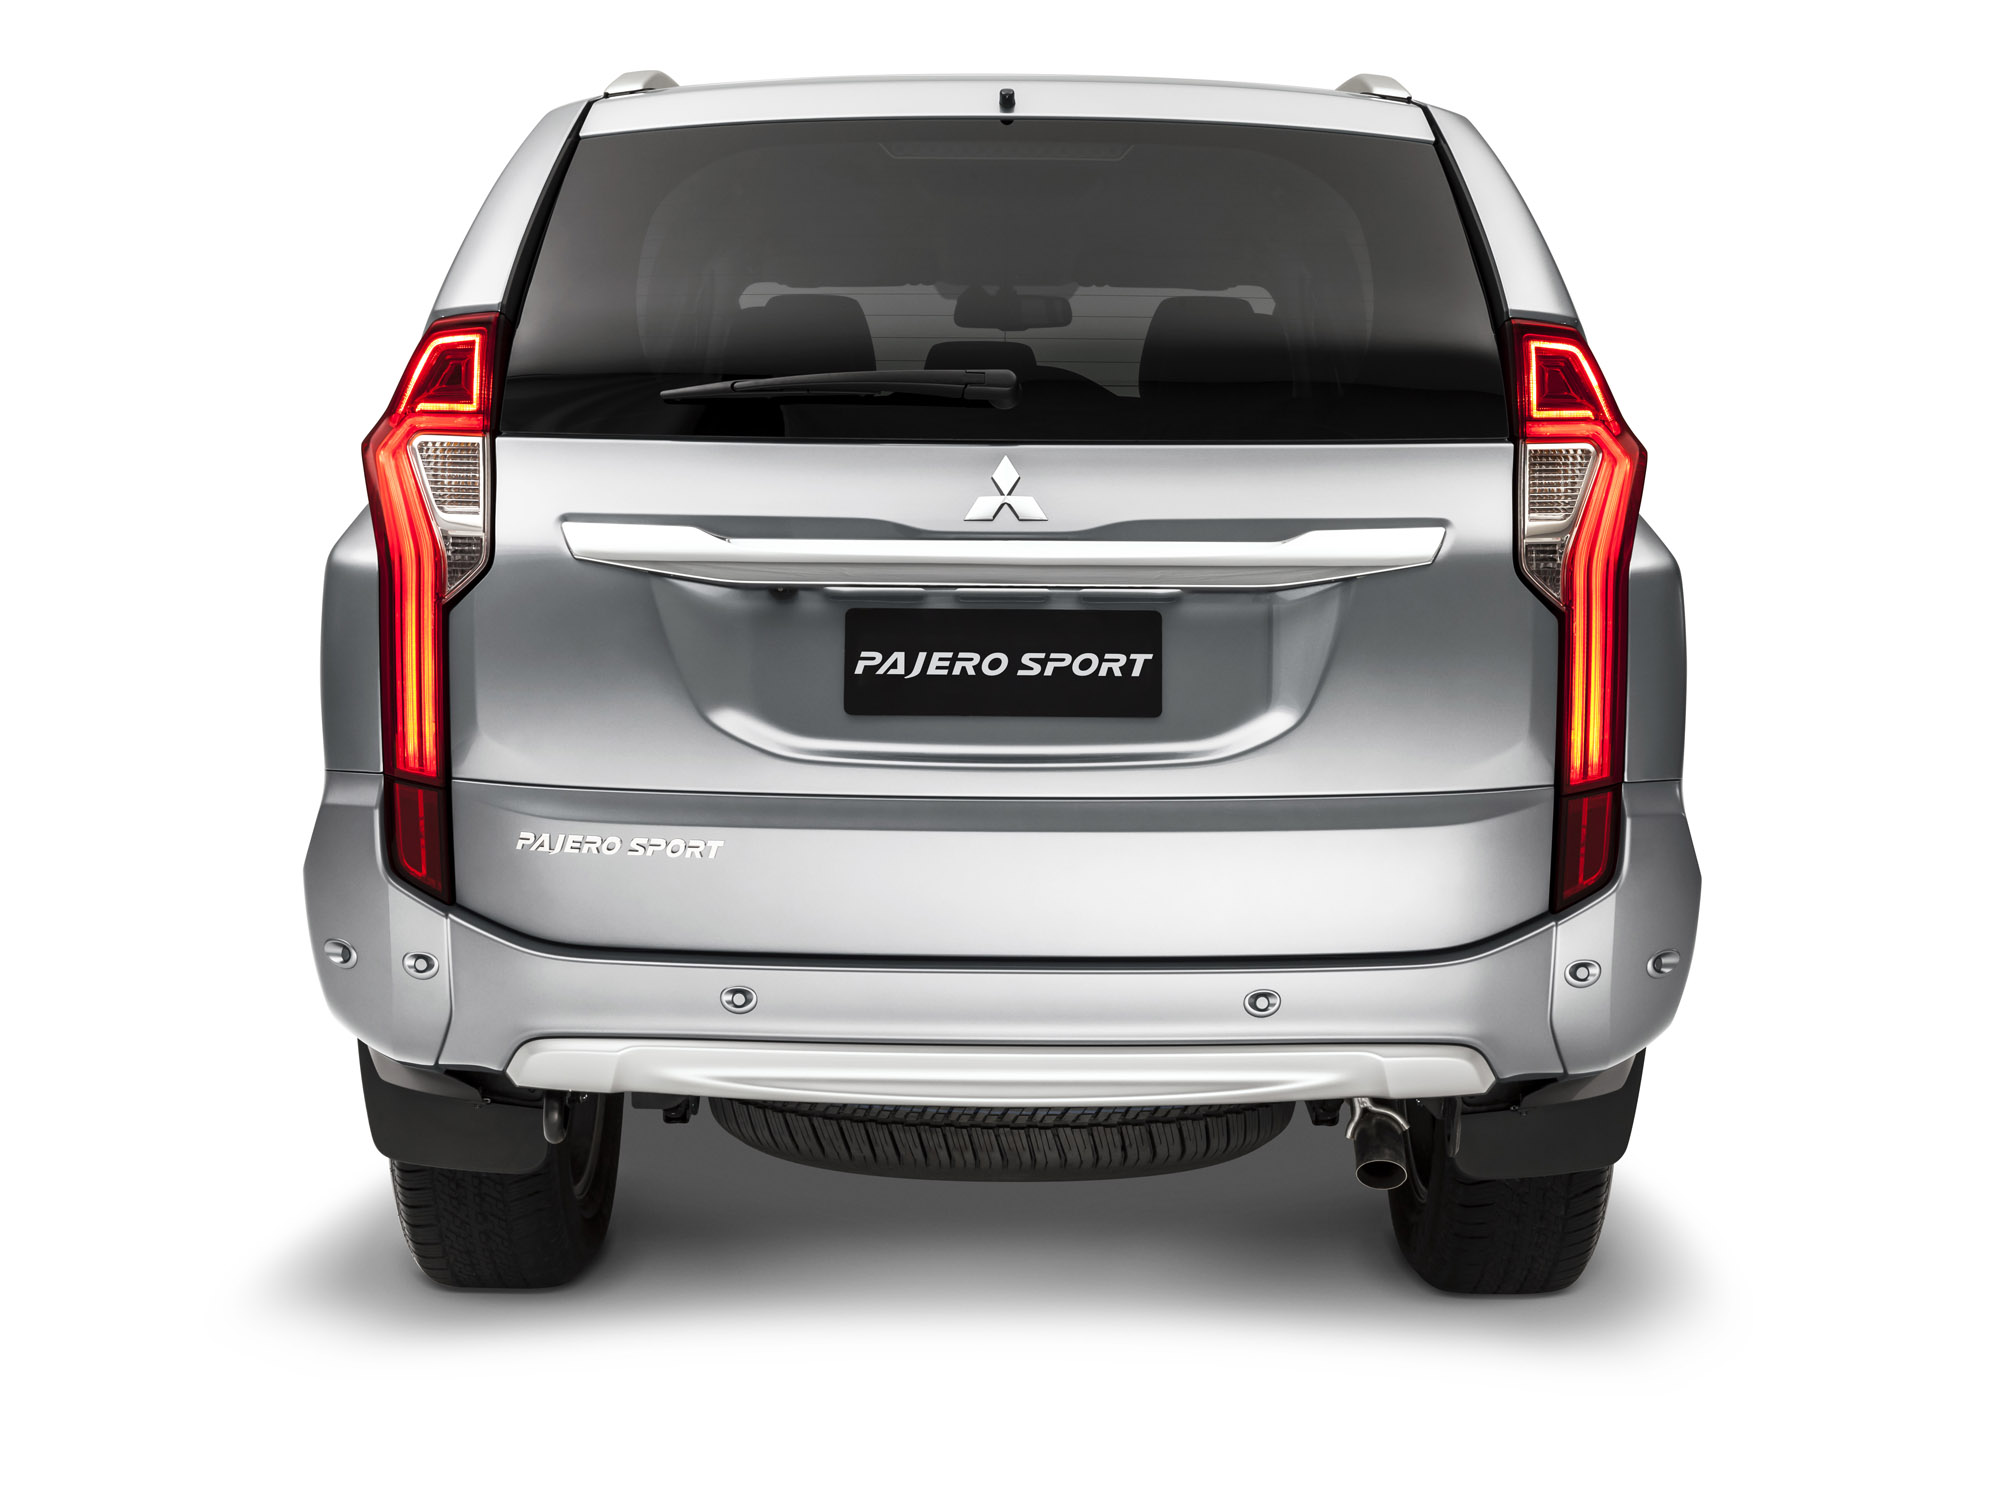 2016 Mitsubishi Pajero Sport Rear (Photo 15 of 23)